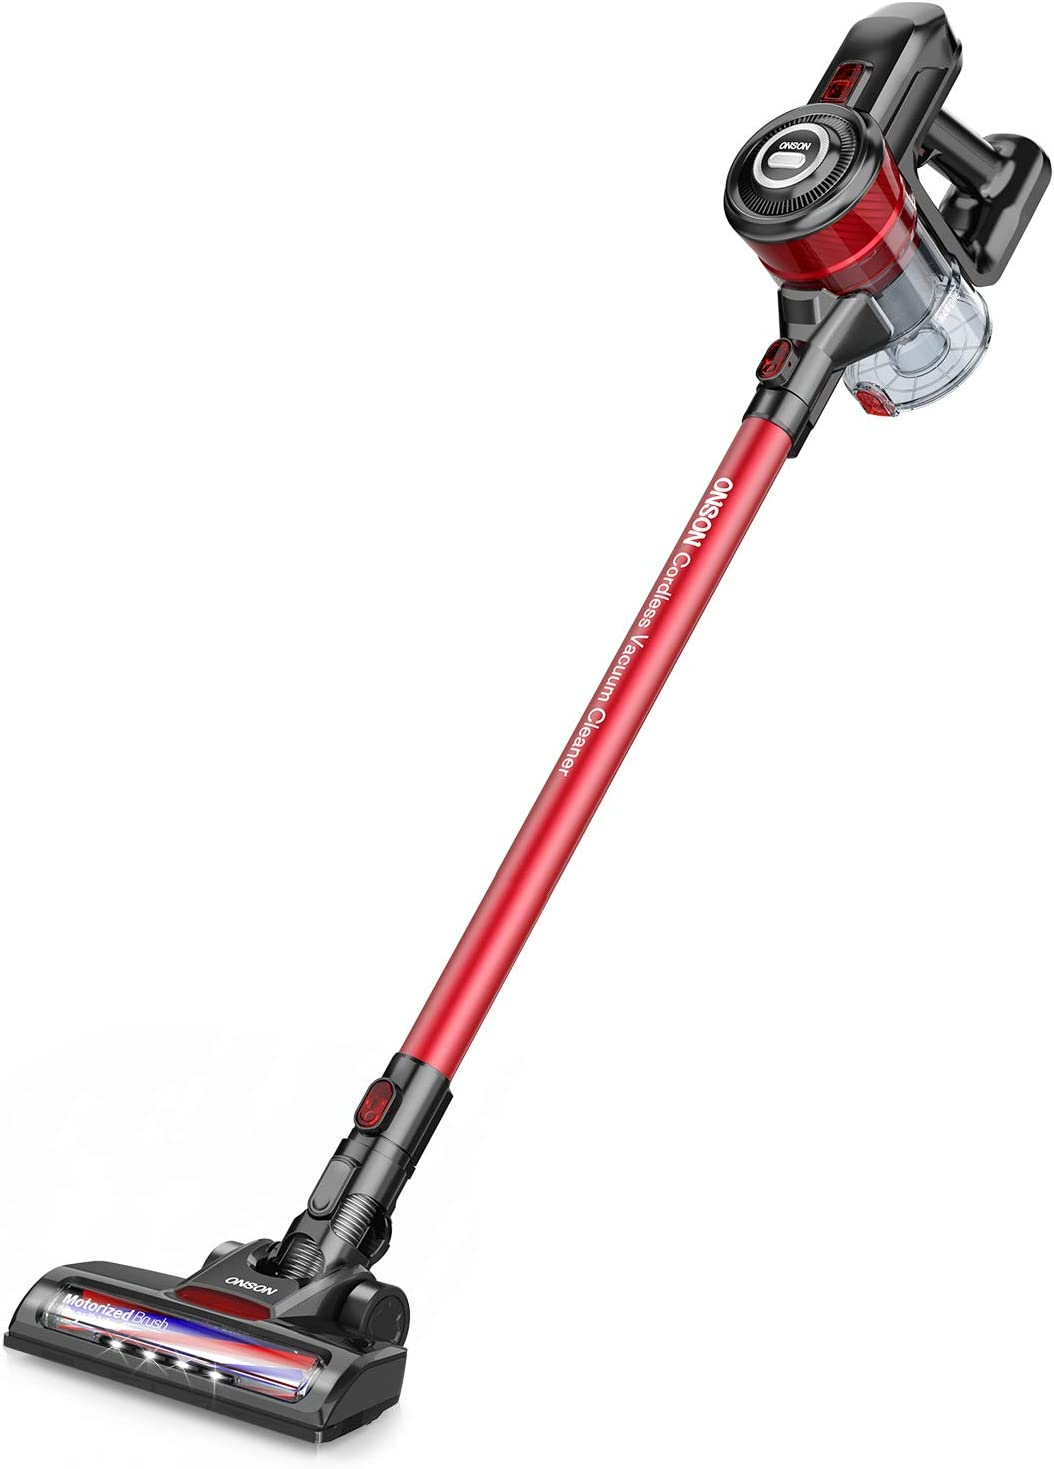 Cordless Vacuum, ONSON Stick Vacuum Cleaner, 12KPa Powerful Cleaning Lightweight Handheld Vacuum with Rechargeable Lithium Ion Battery